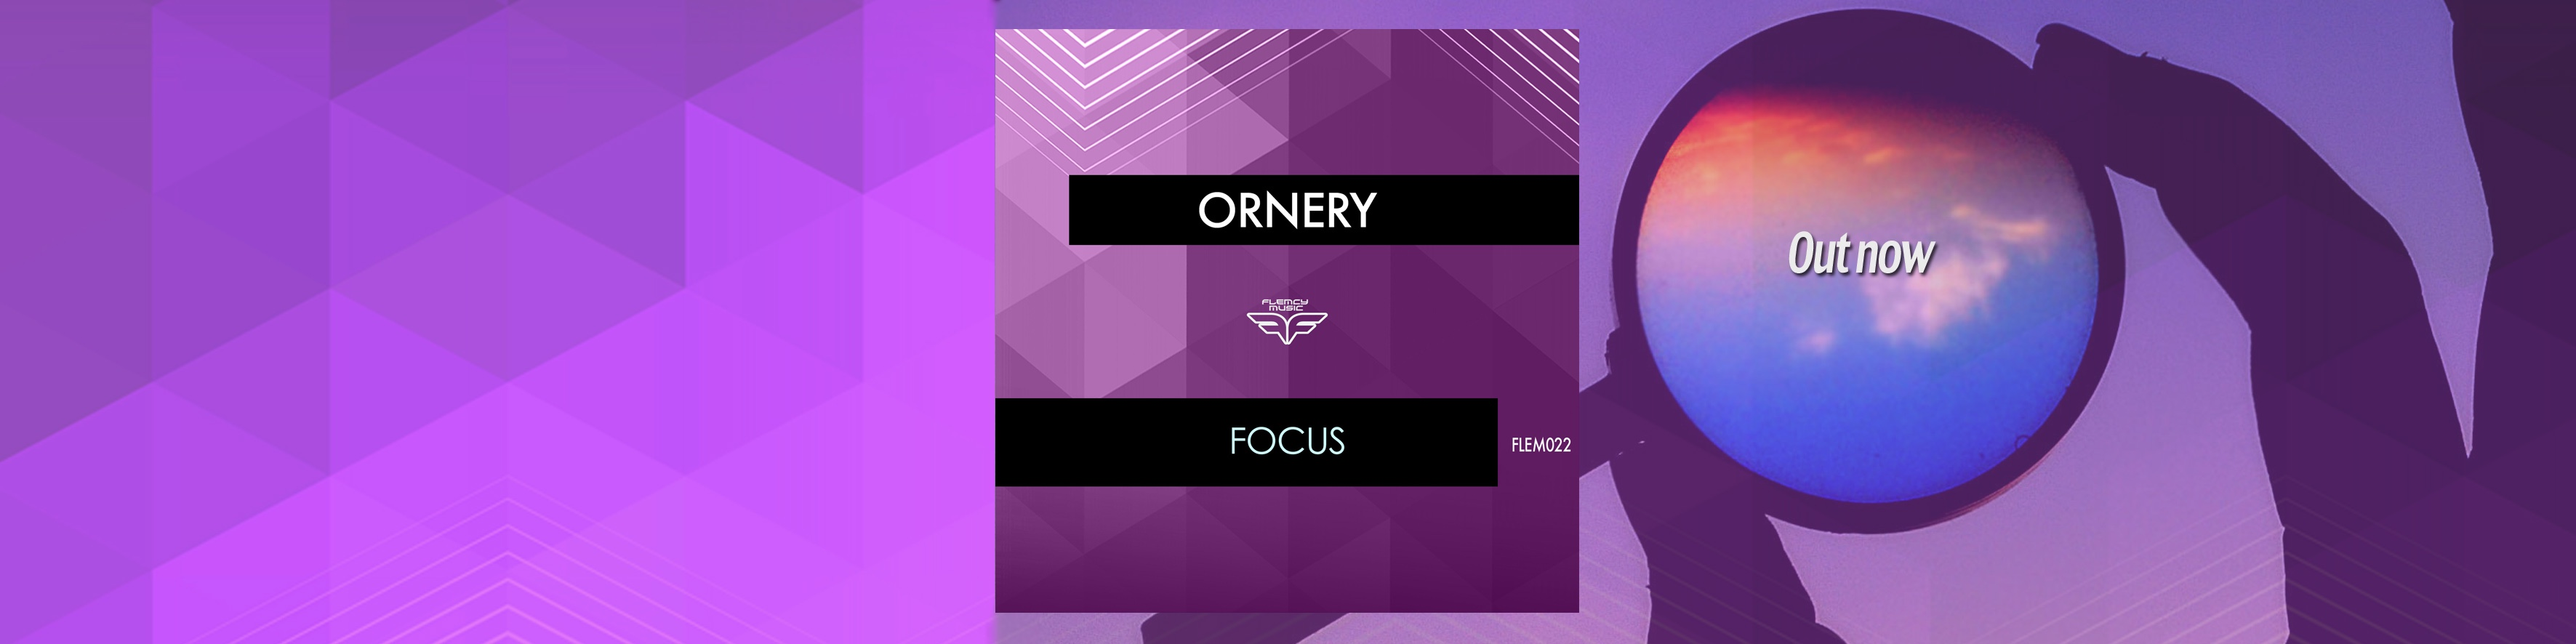 Flemcy slider banner Ornery – Focus slider out now + image